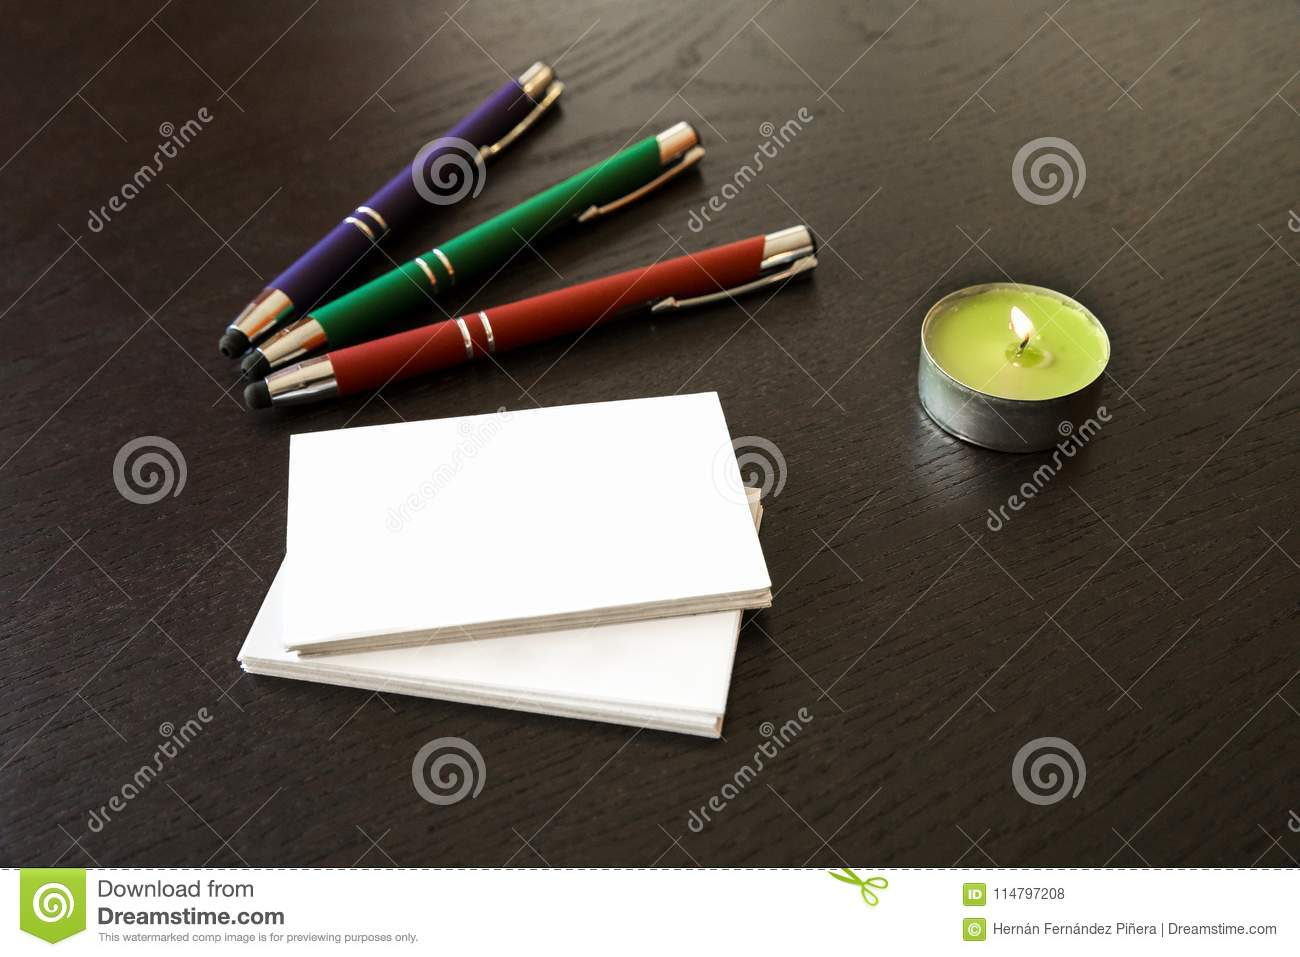 Pens and business cards stock photo. Image of ideas - 114797208